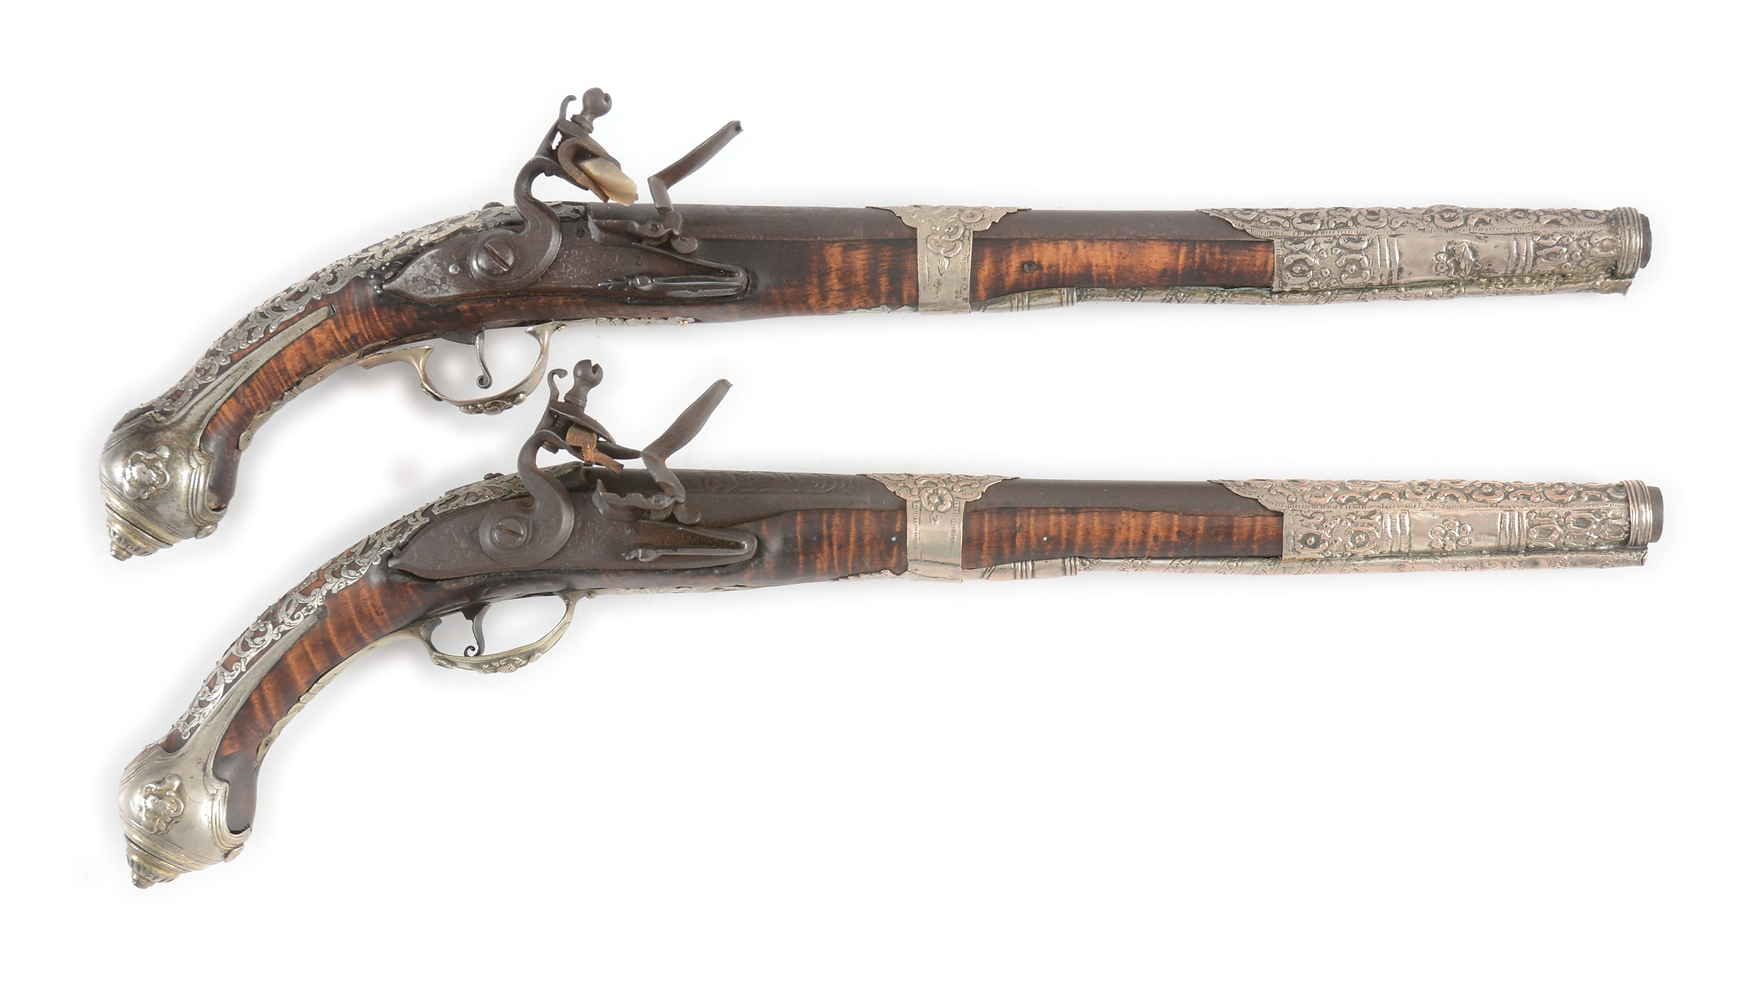 (A) PAIR OF SILVER MOUNTED OTTOMAN FLINTLOCK HOLSTER PISTOLS.